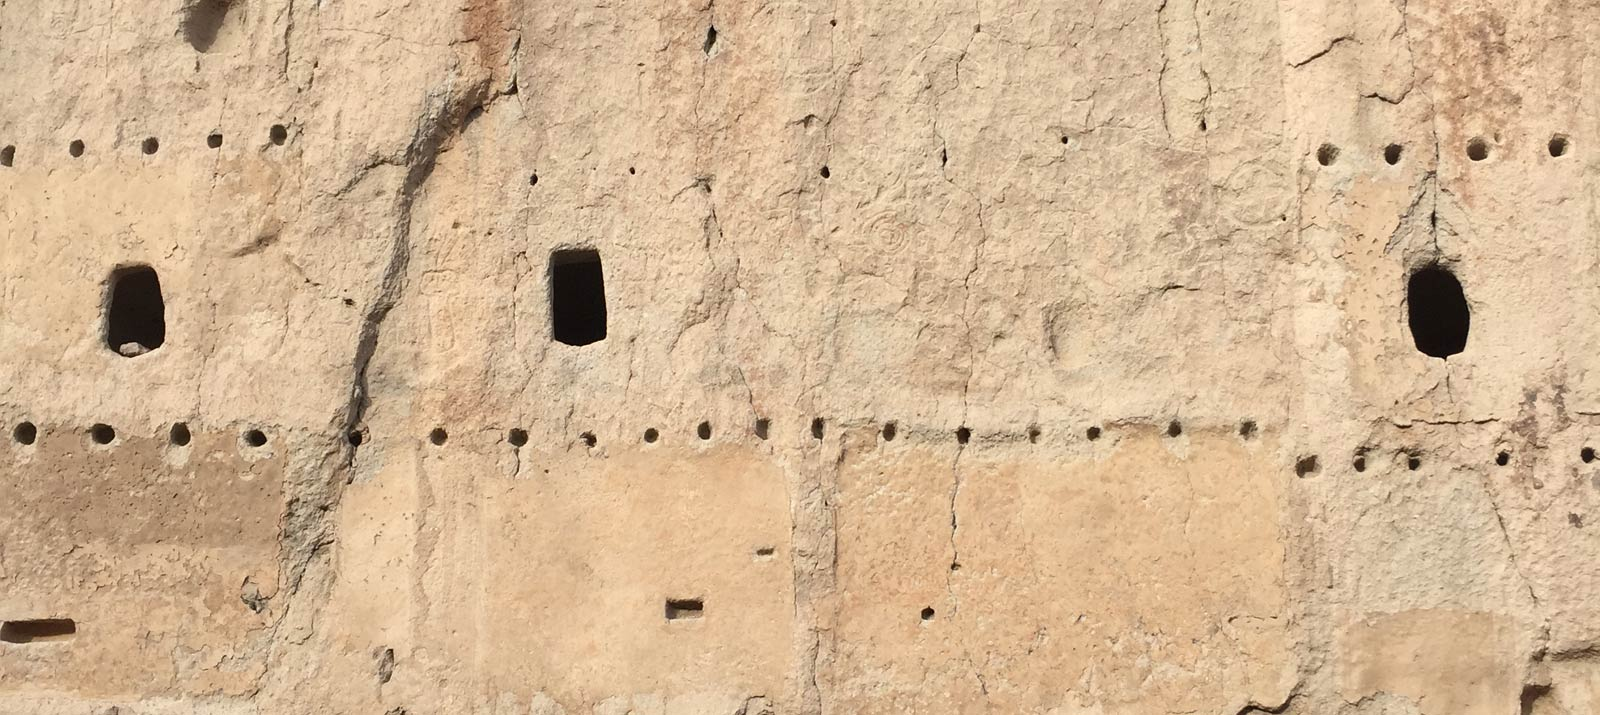 Bandelier Cliff Dwellings